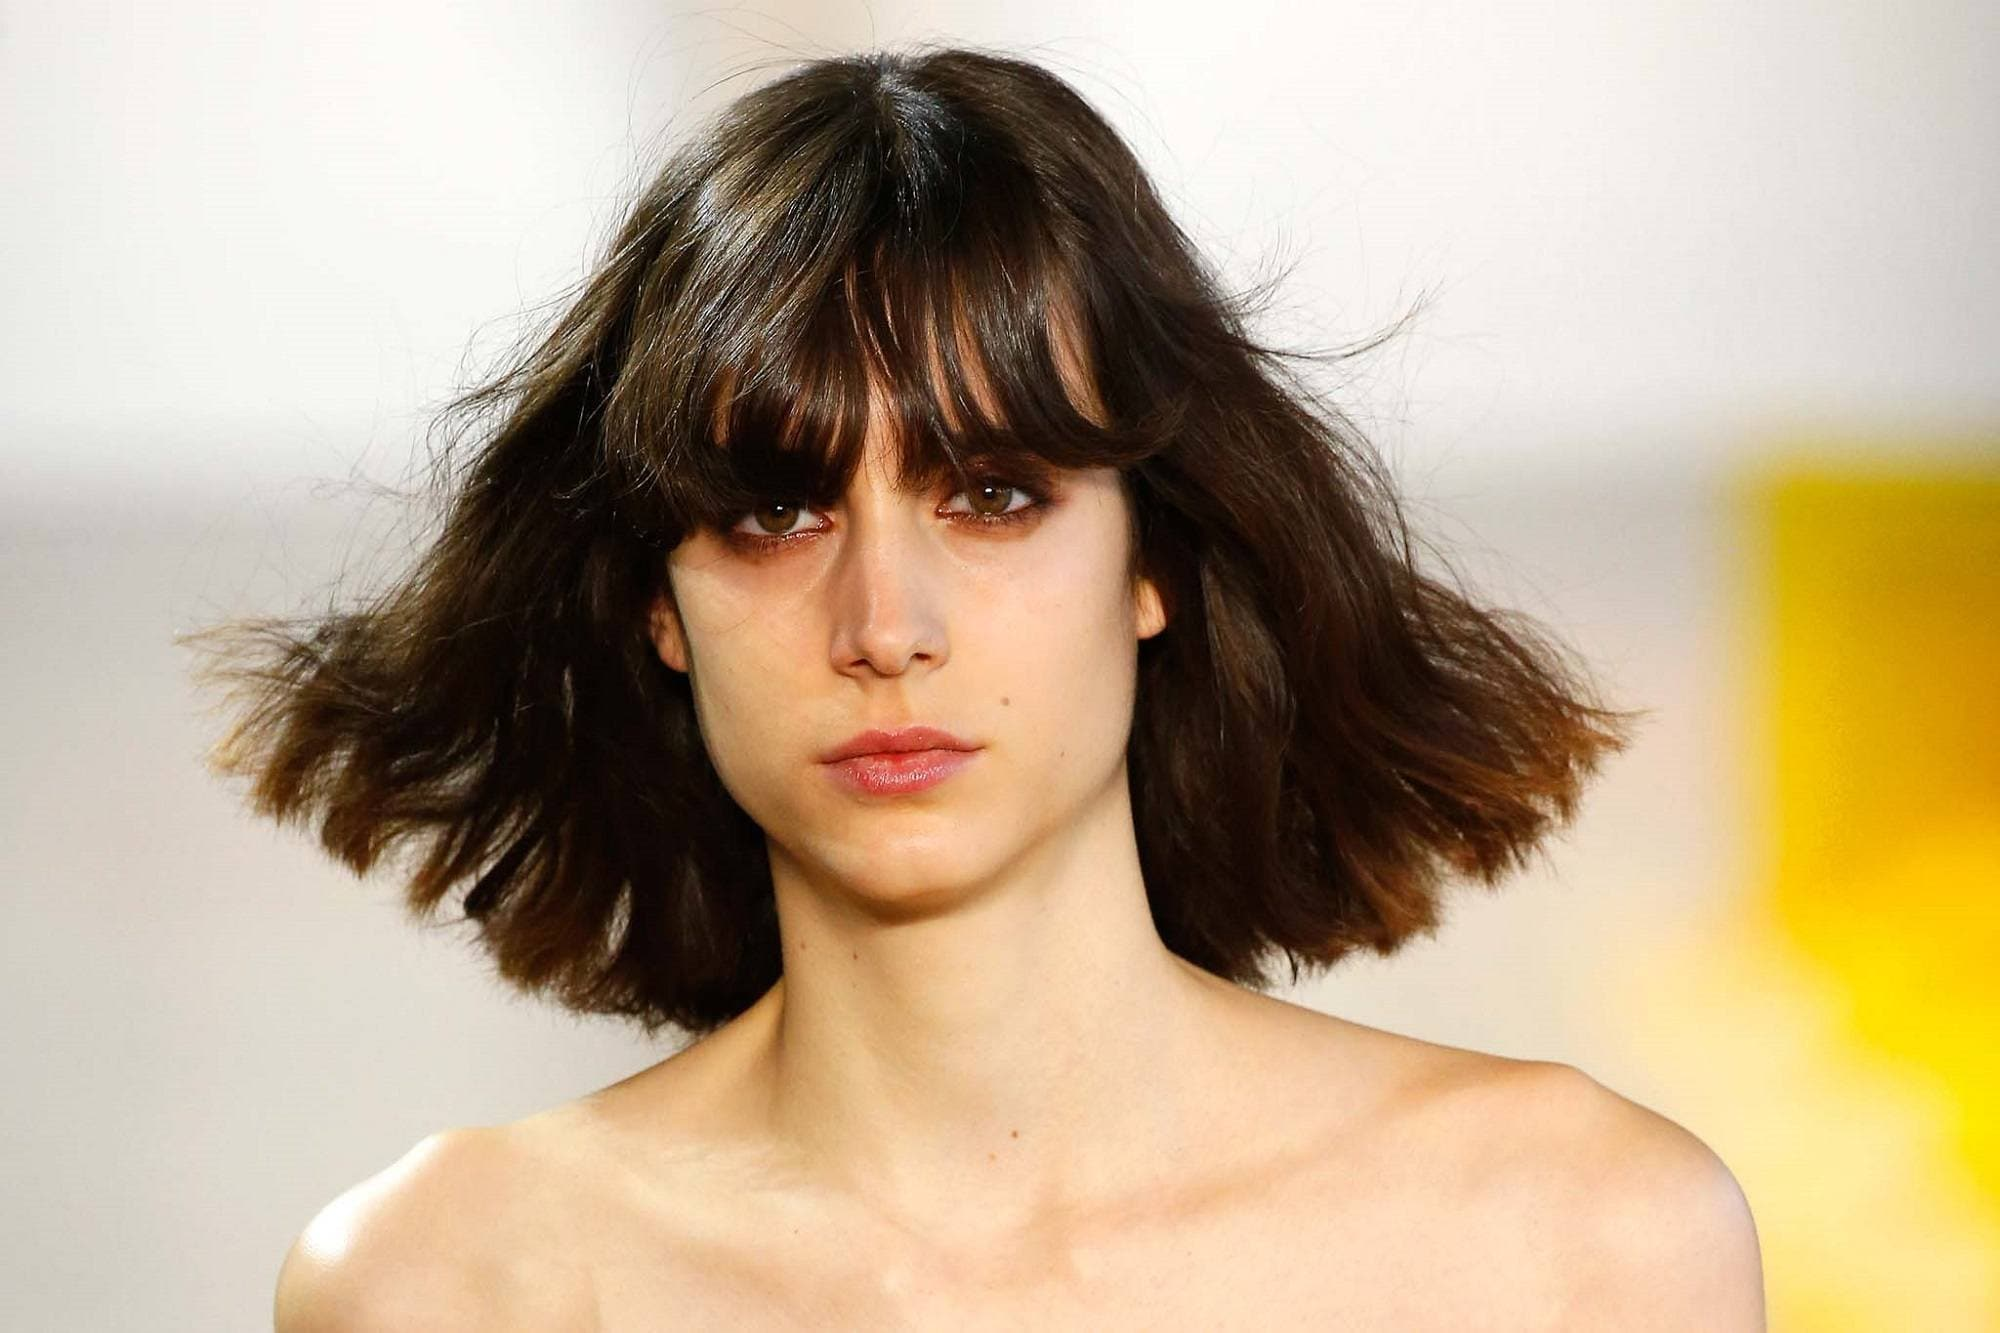 New York Fashion Week hair: Closeup shot of a woman with shoulder length dark hair with bangs